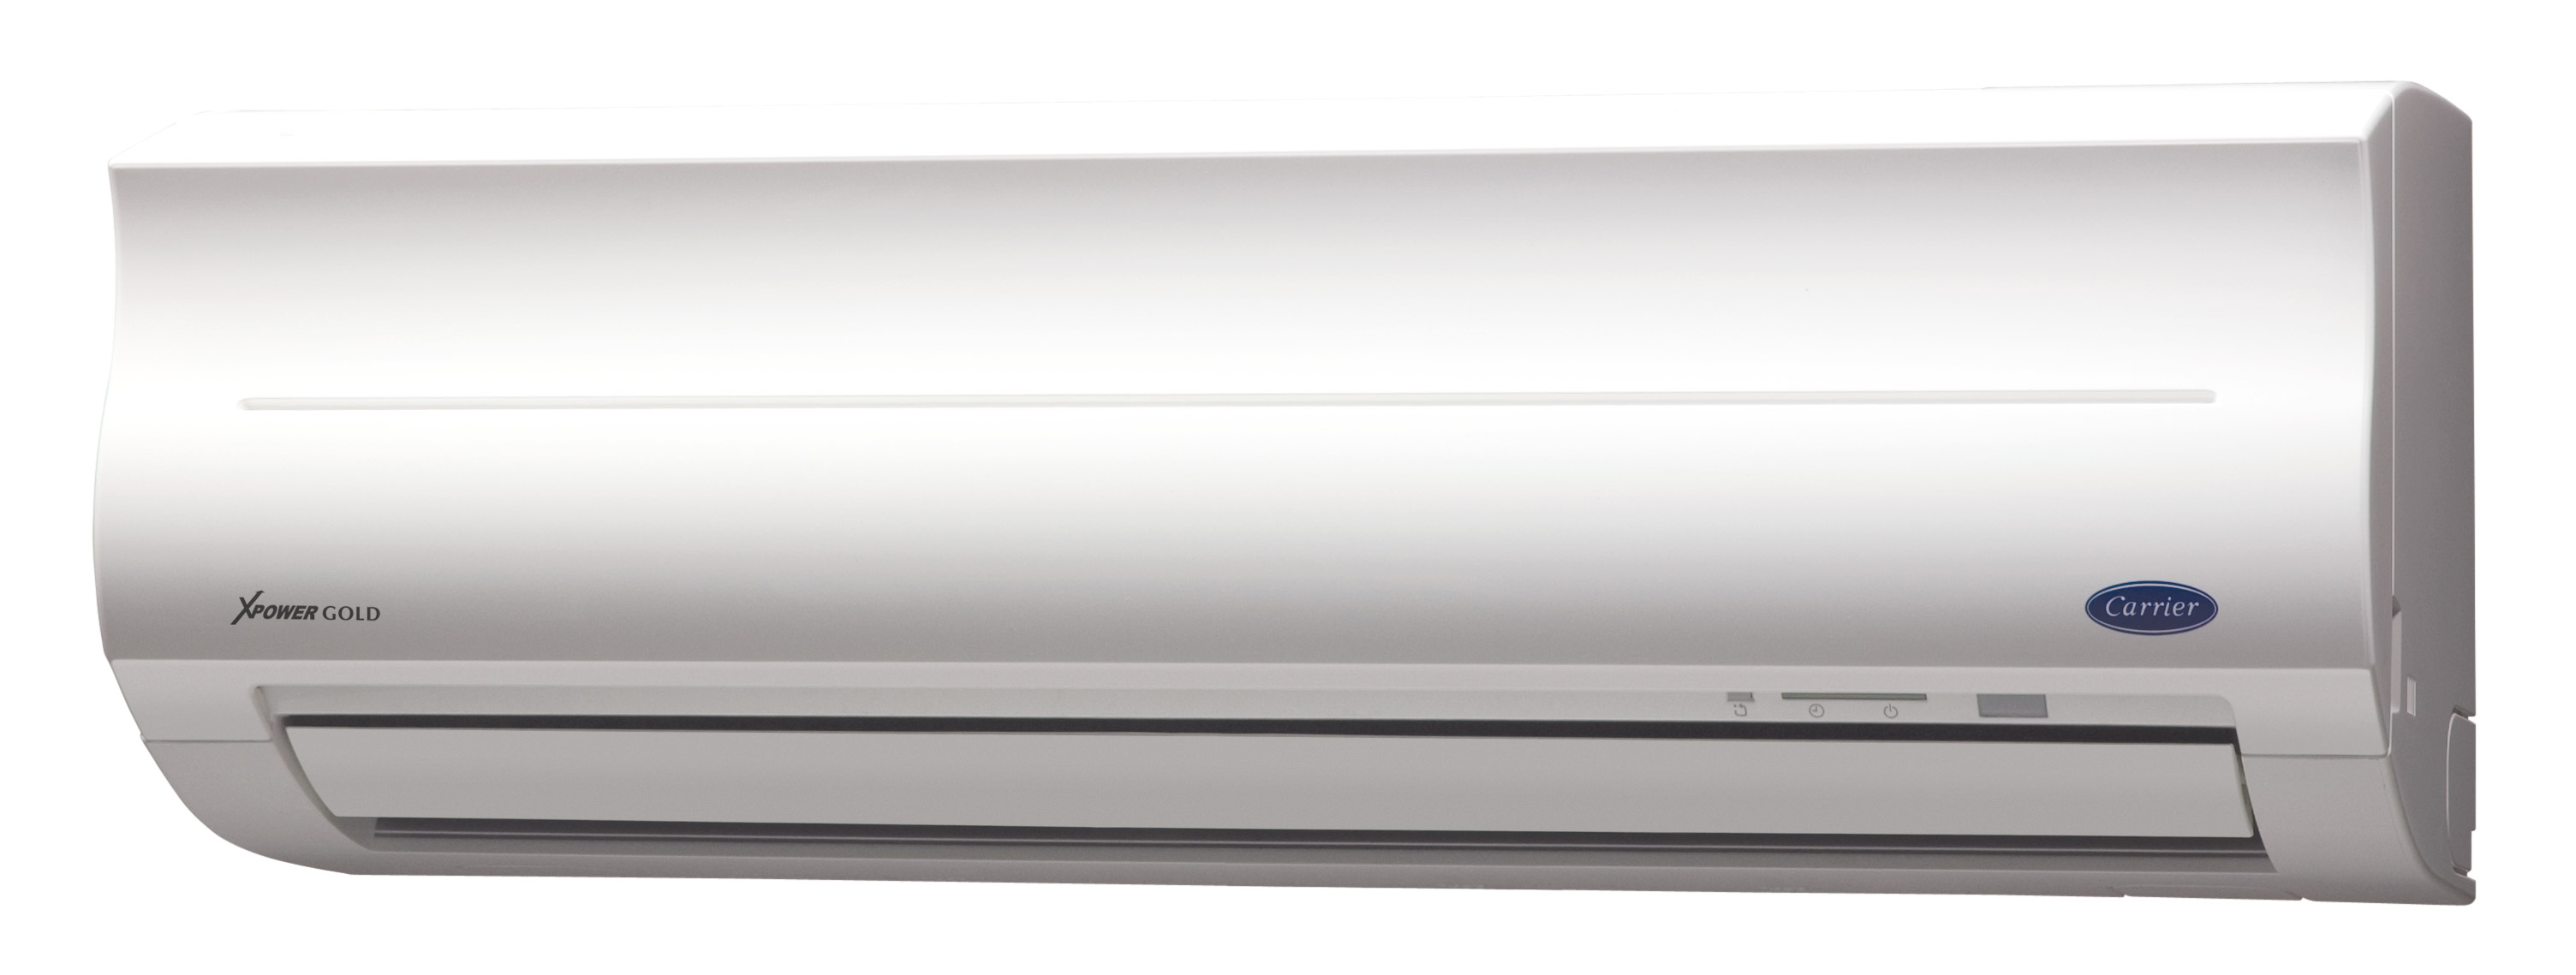 Power Gold air conditioner Concepcion Carrier Air Conditioning #383F5F